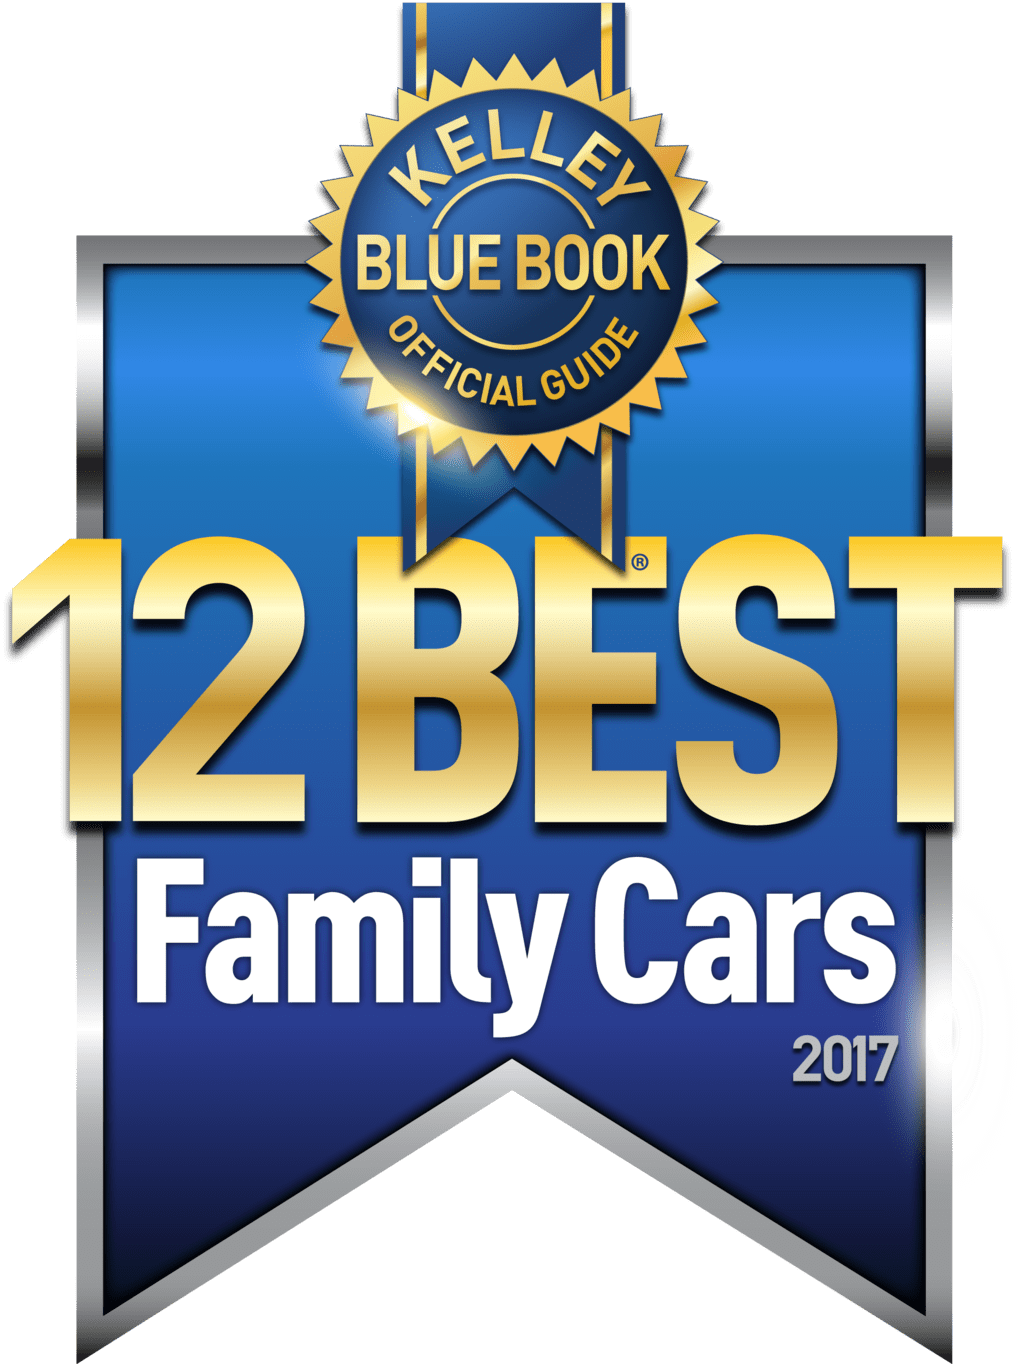 banner for Kelley Blue Book Official Guide 12 Best Family Cars 2017